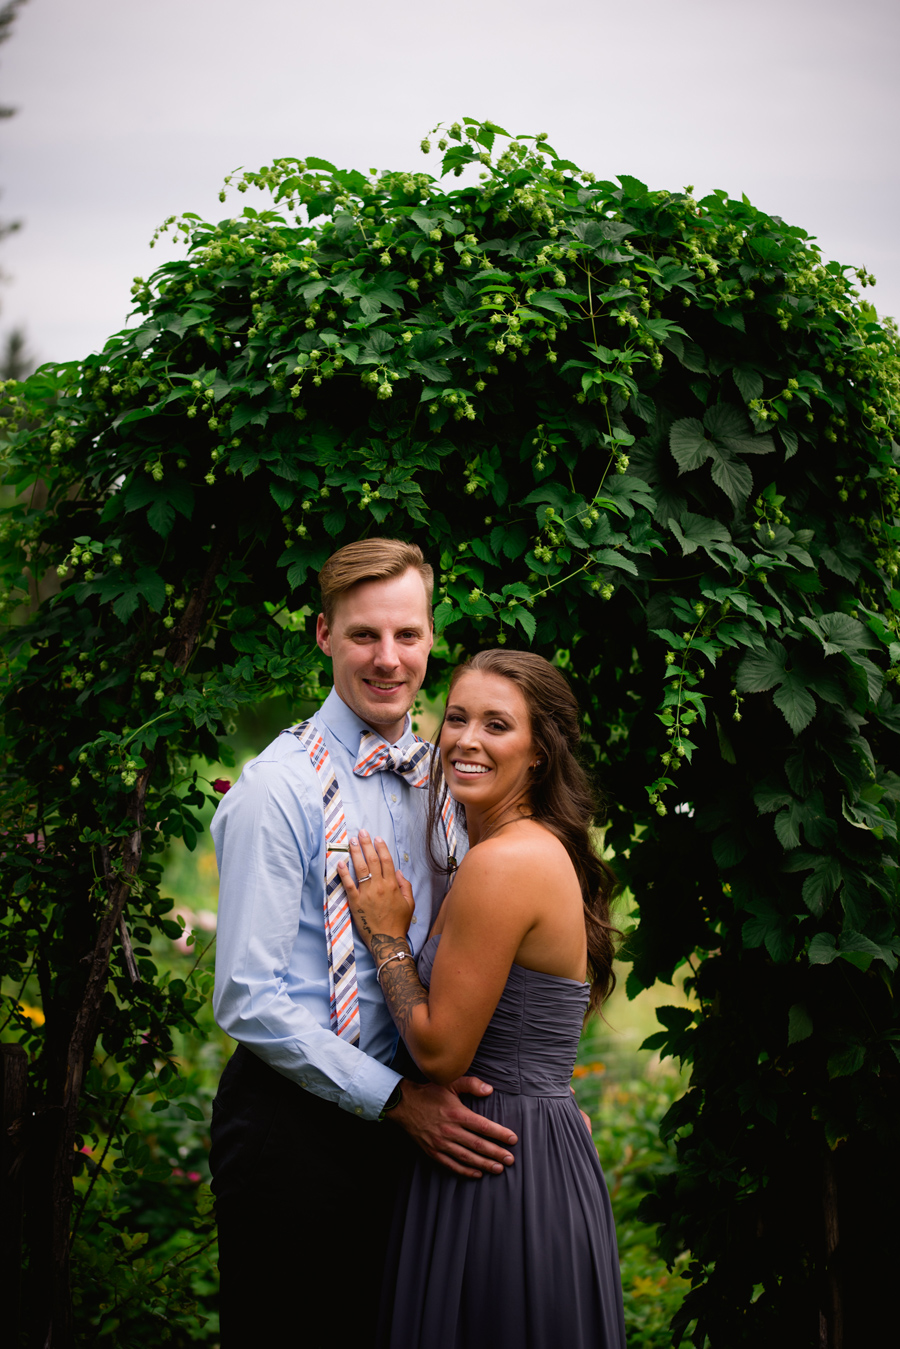 bbcollective_yeg_2016_jessicandjoe_wedding_photography043.jpg